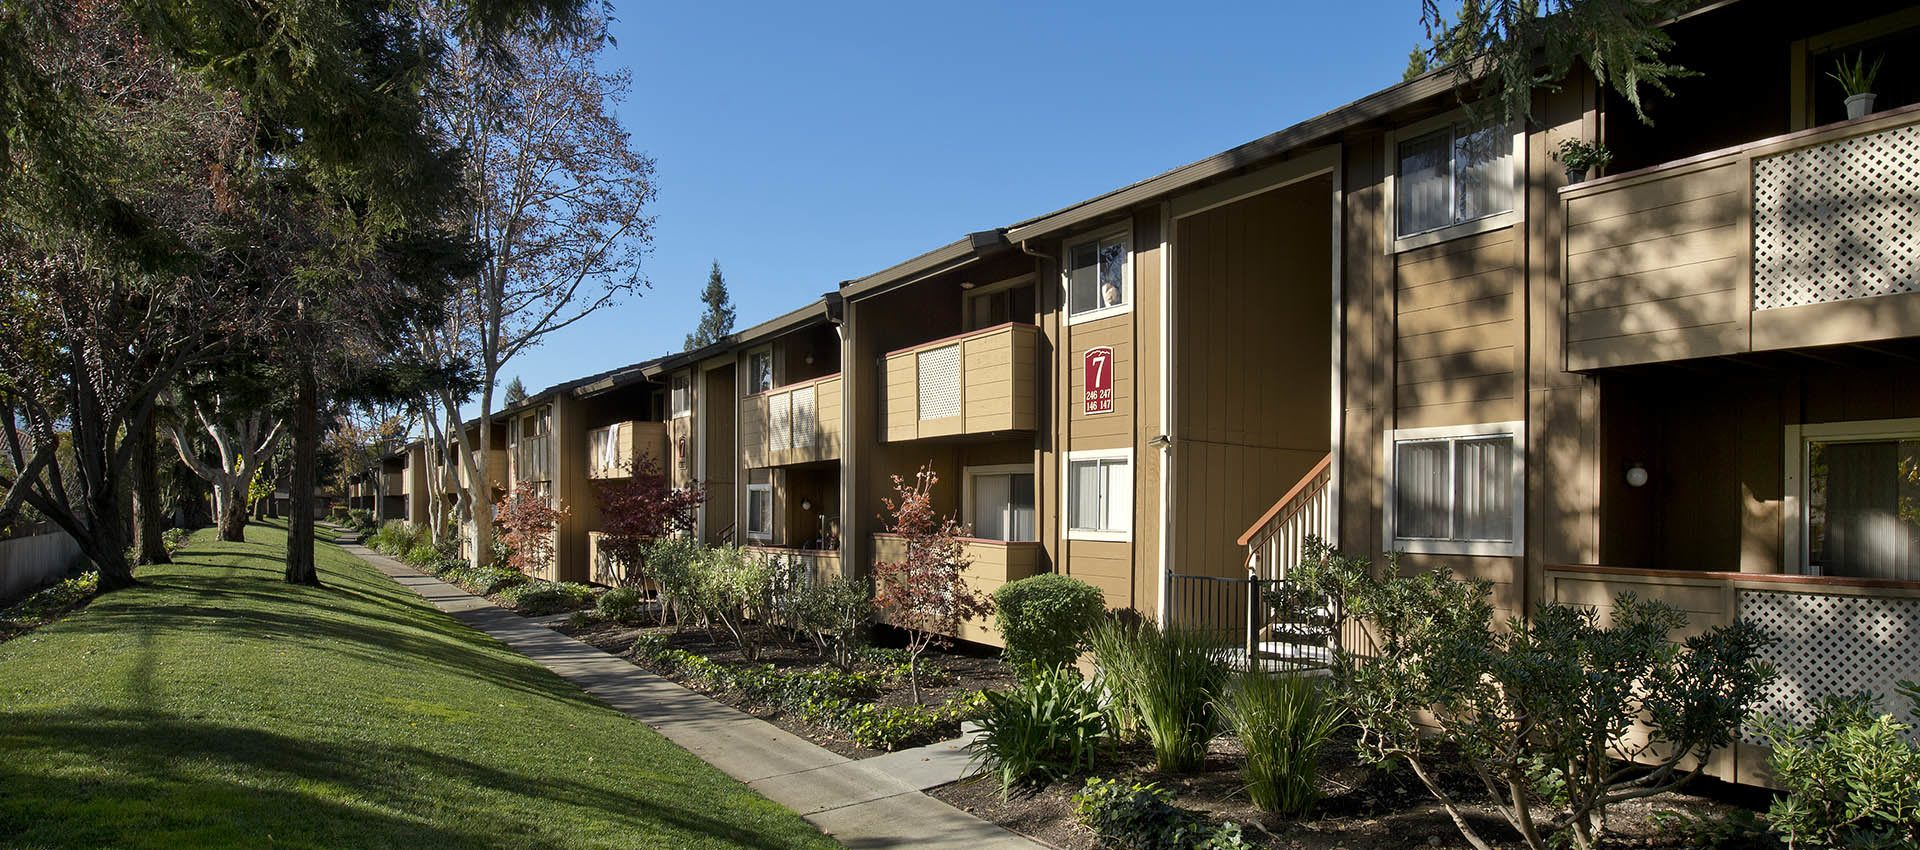 Exterior Or Apartments With Beautiful Trees at Shadow Oaks Apartment Homes in Cupertino